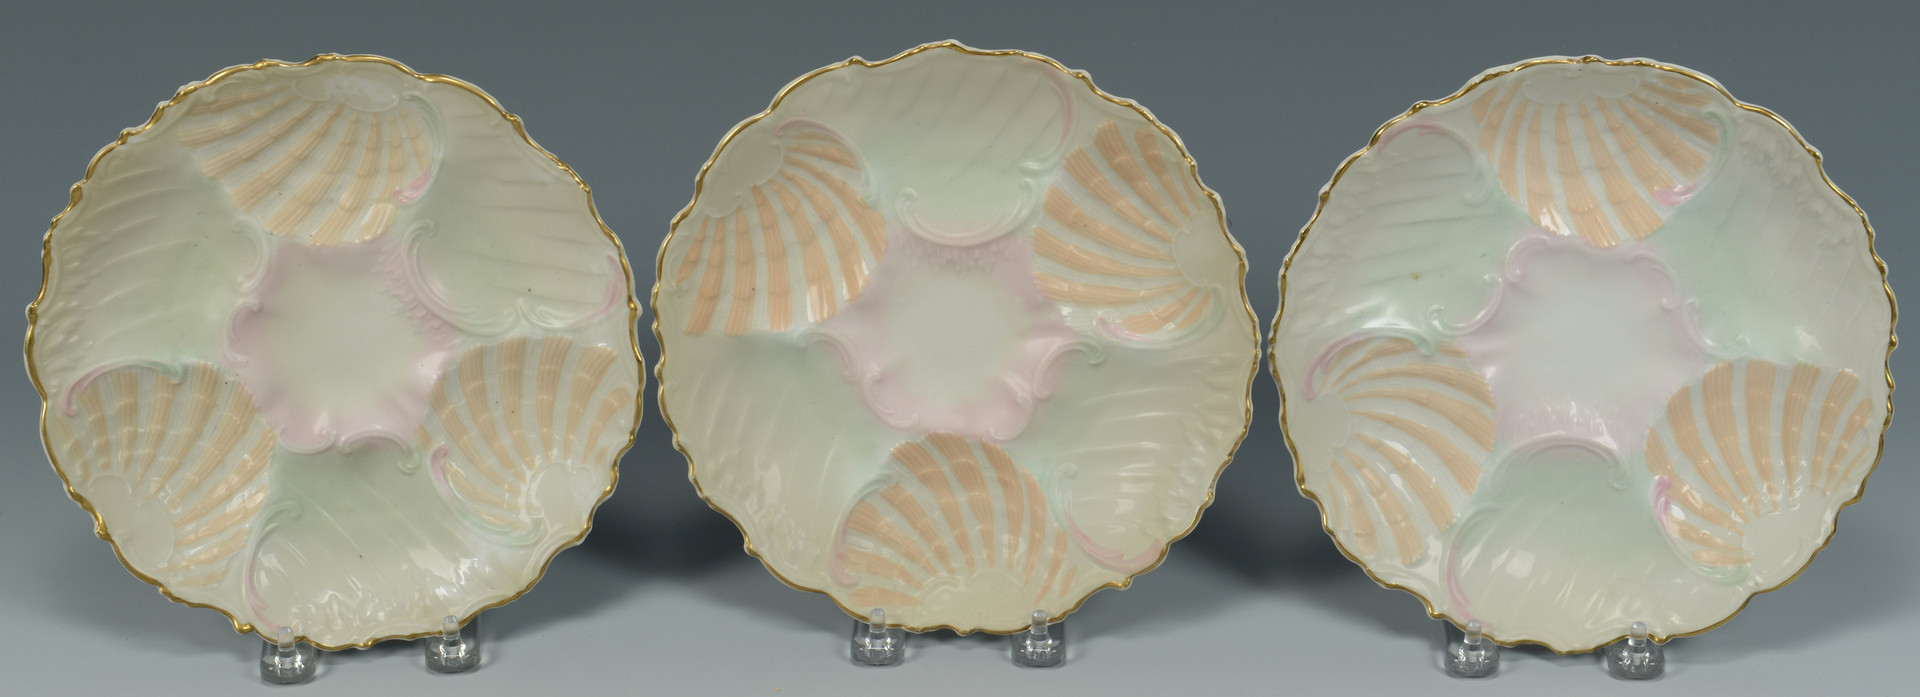 Lot 348: 12 Oyster Plates (11 plus 1)